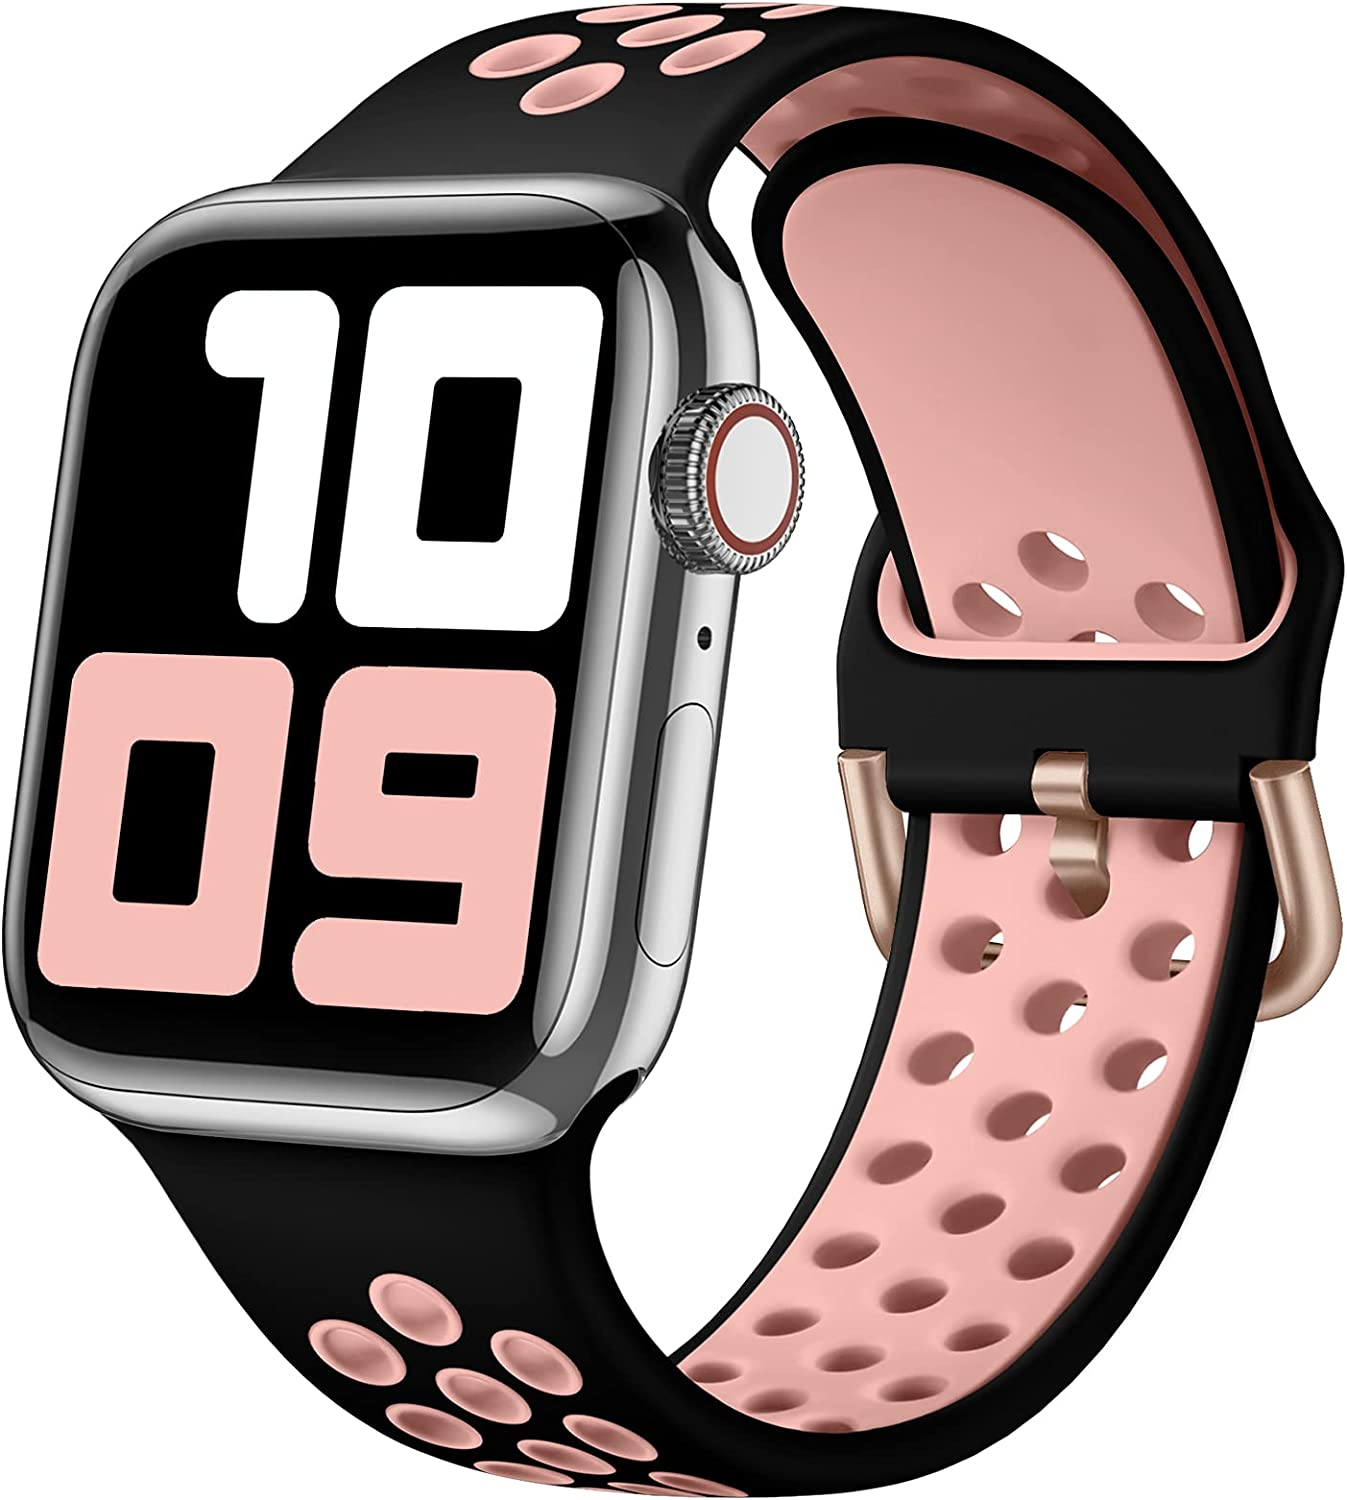 SNBLK Sport Bands Compatible with Apple Watch Bands 40mm 38mm,Soft Breathable Silicone Replacement Strap with Classic Clasp for Women Men for iWatch SE Series 6 5 4 3 2 1,Black/Pink 38/40mm